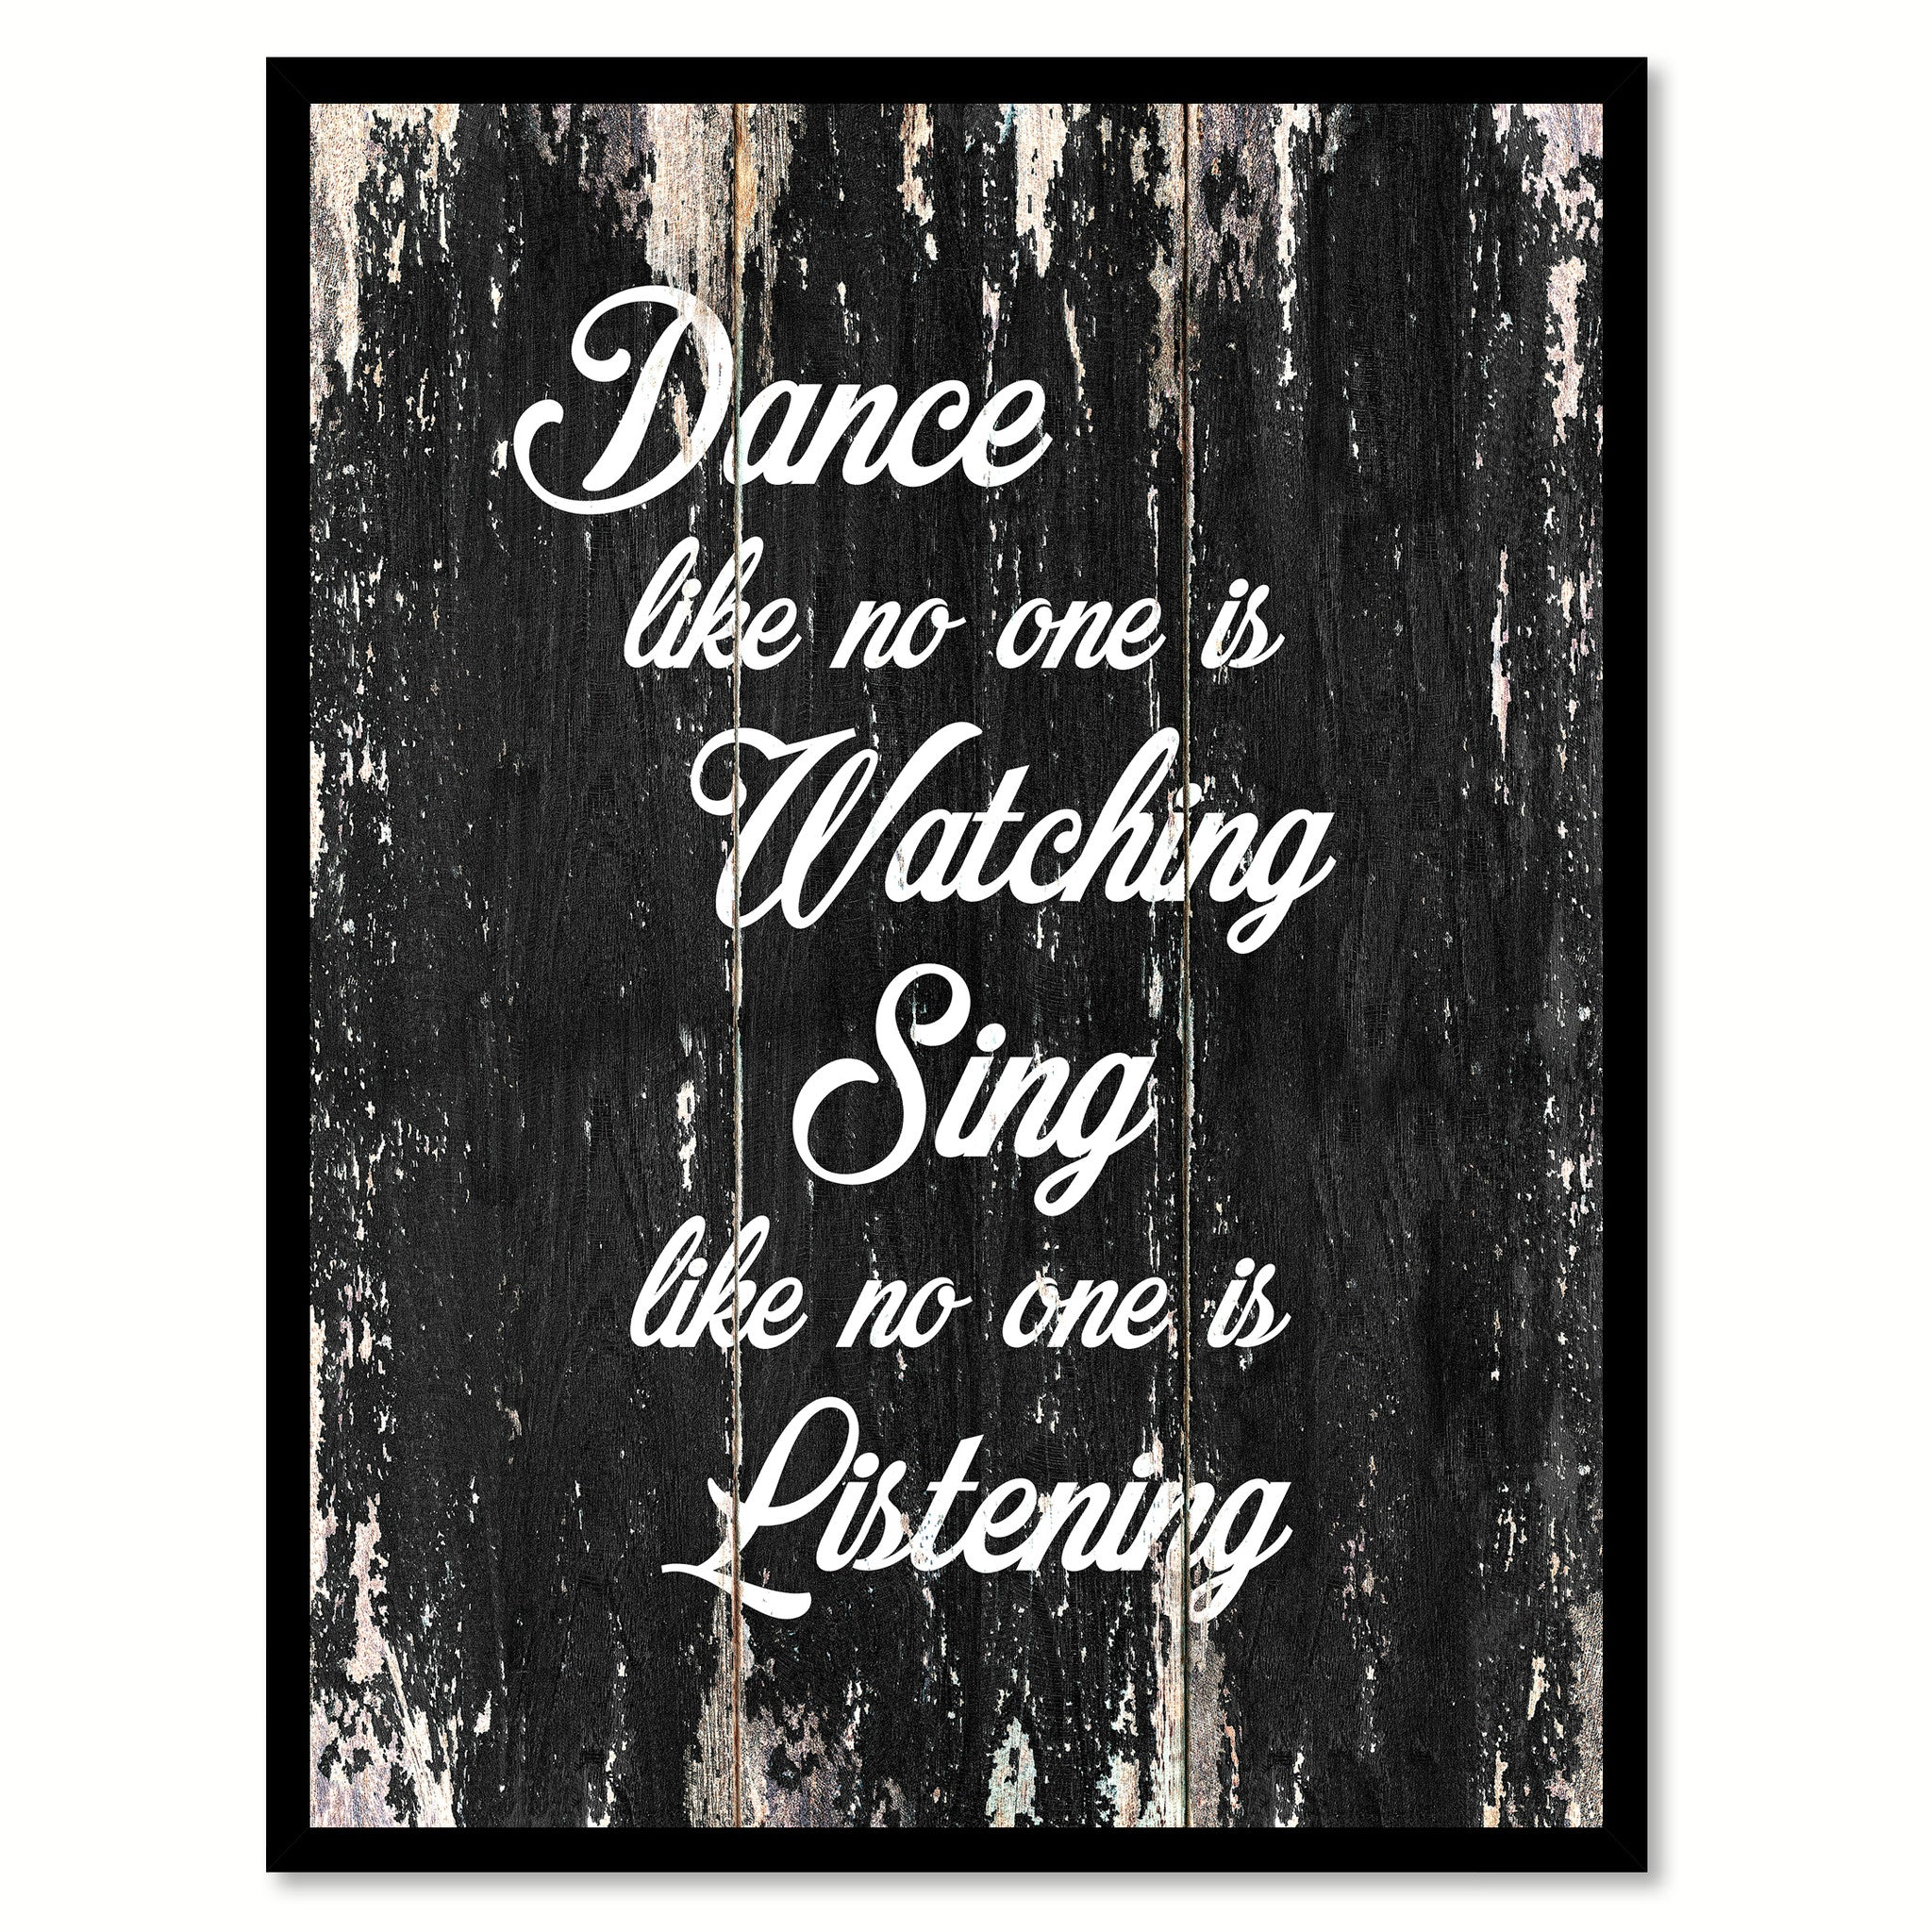 Dance like no one is watching sing like no one is listening Motivational Quote Saying Canvas Print with Picture Frame Home Decor Wall Art